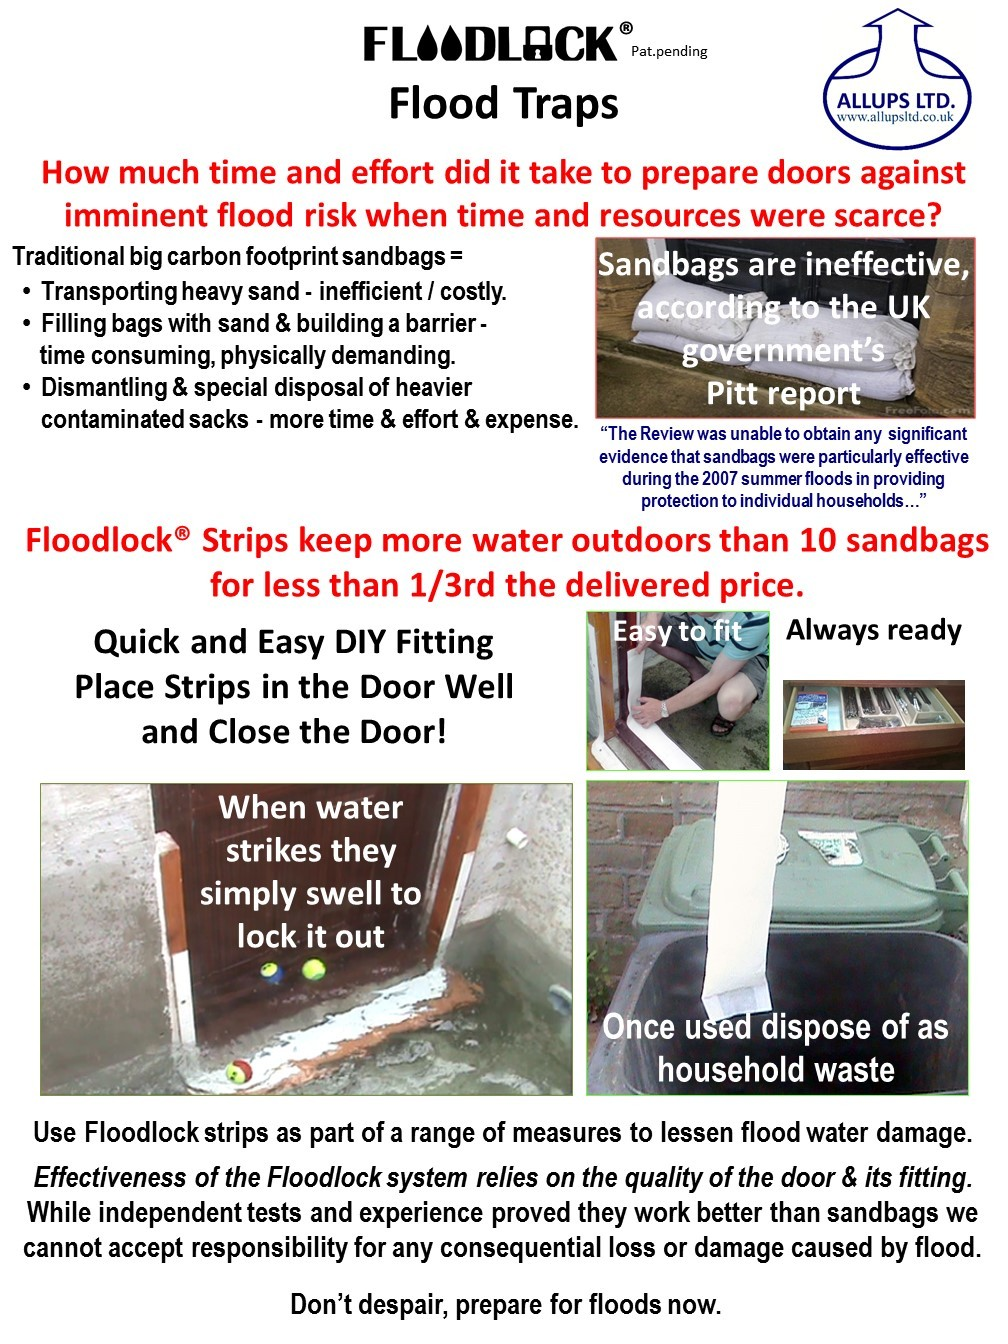 Poster_for_Flood_Traps_18_01_2017_for_use_on_Allups_Website